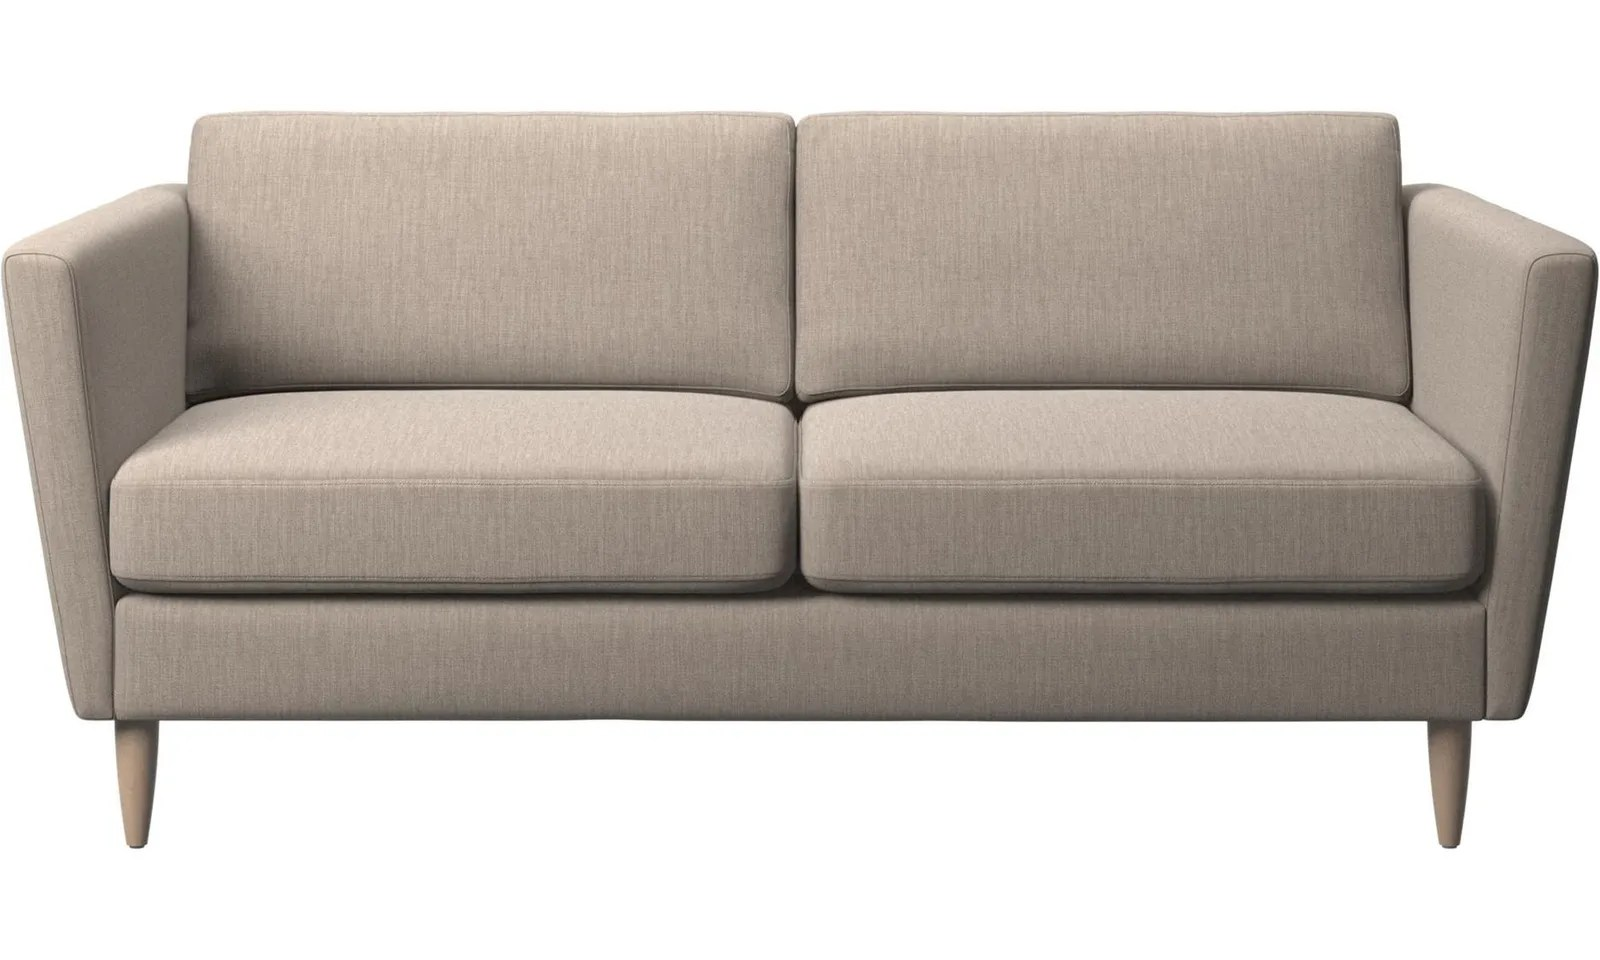 Stores Like Cb2 The Best Affordable Sofas That Don T Look Like Affordable Sofas